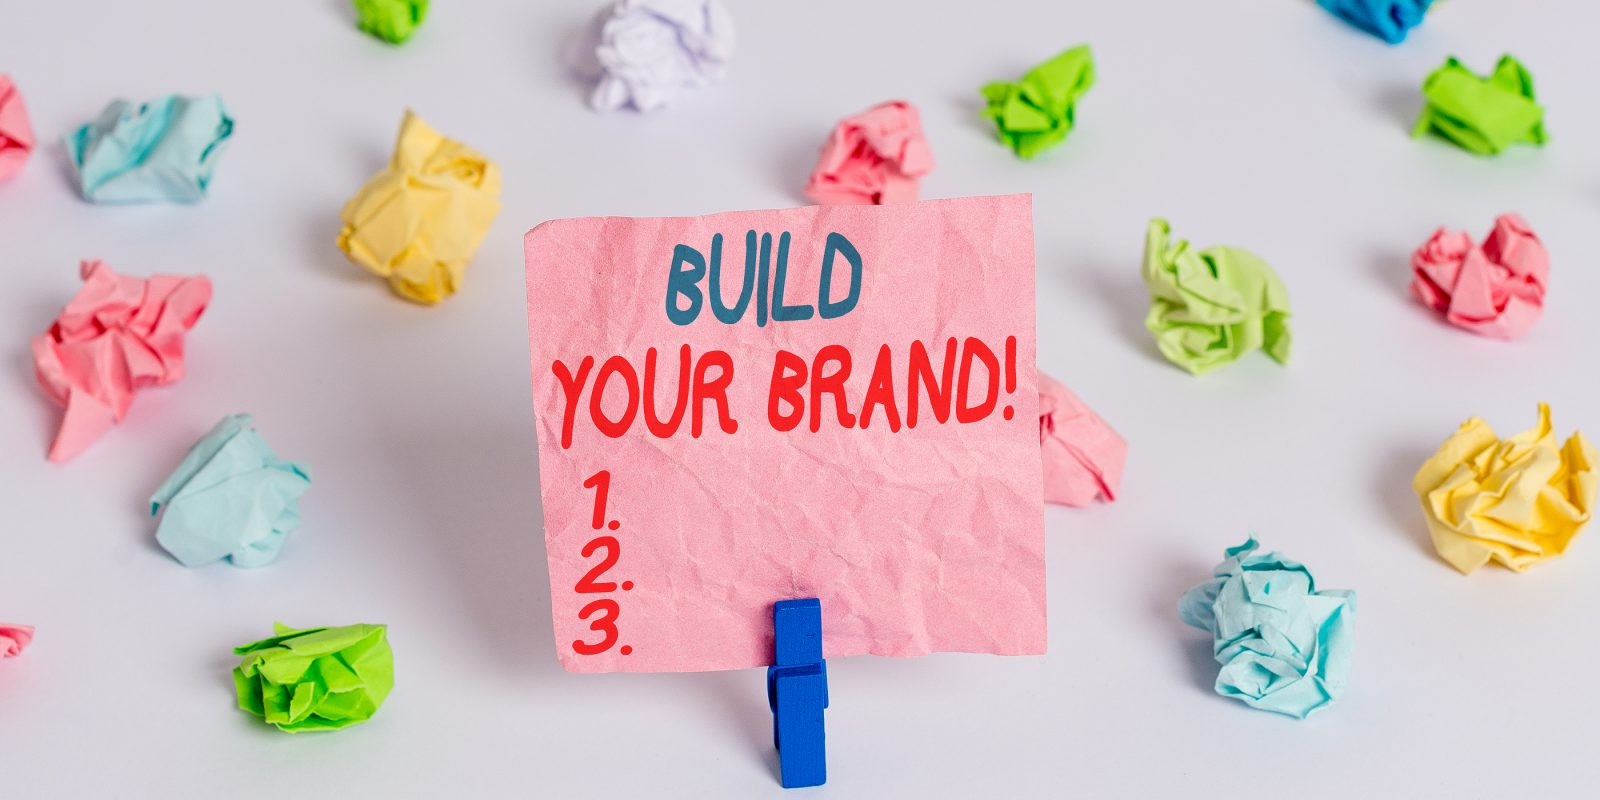 How to Build Your Own Brand?